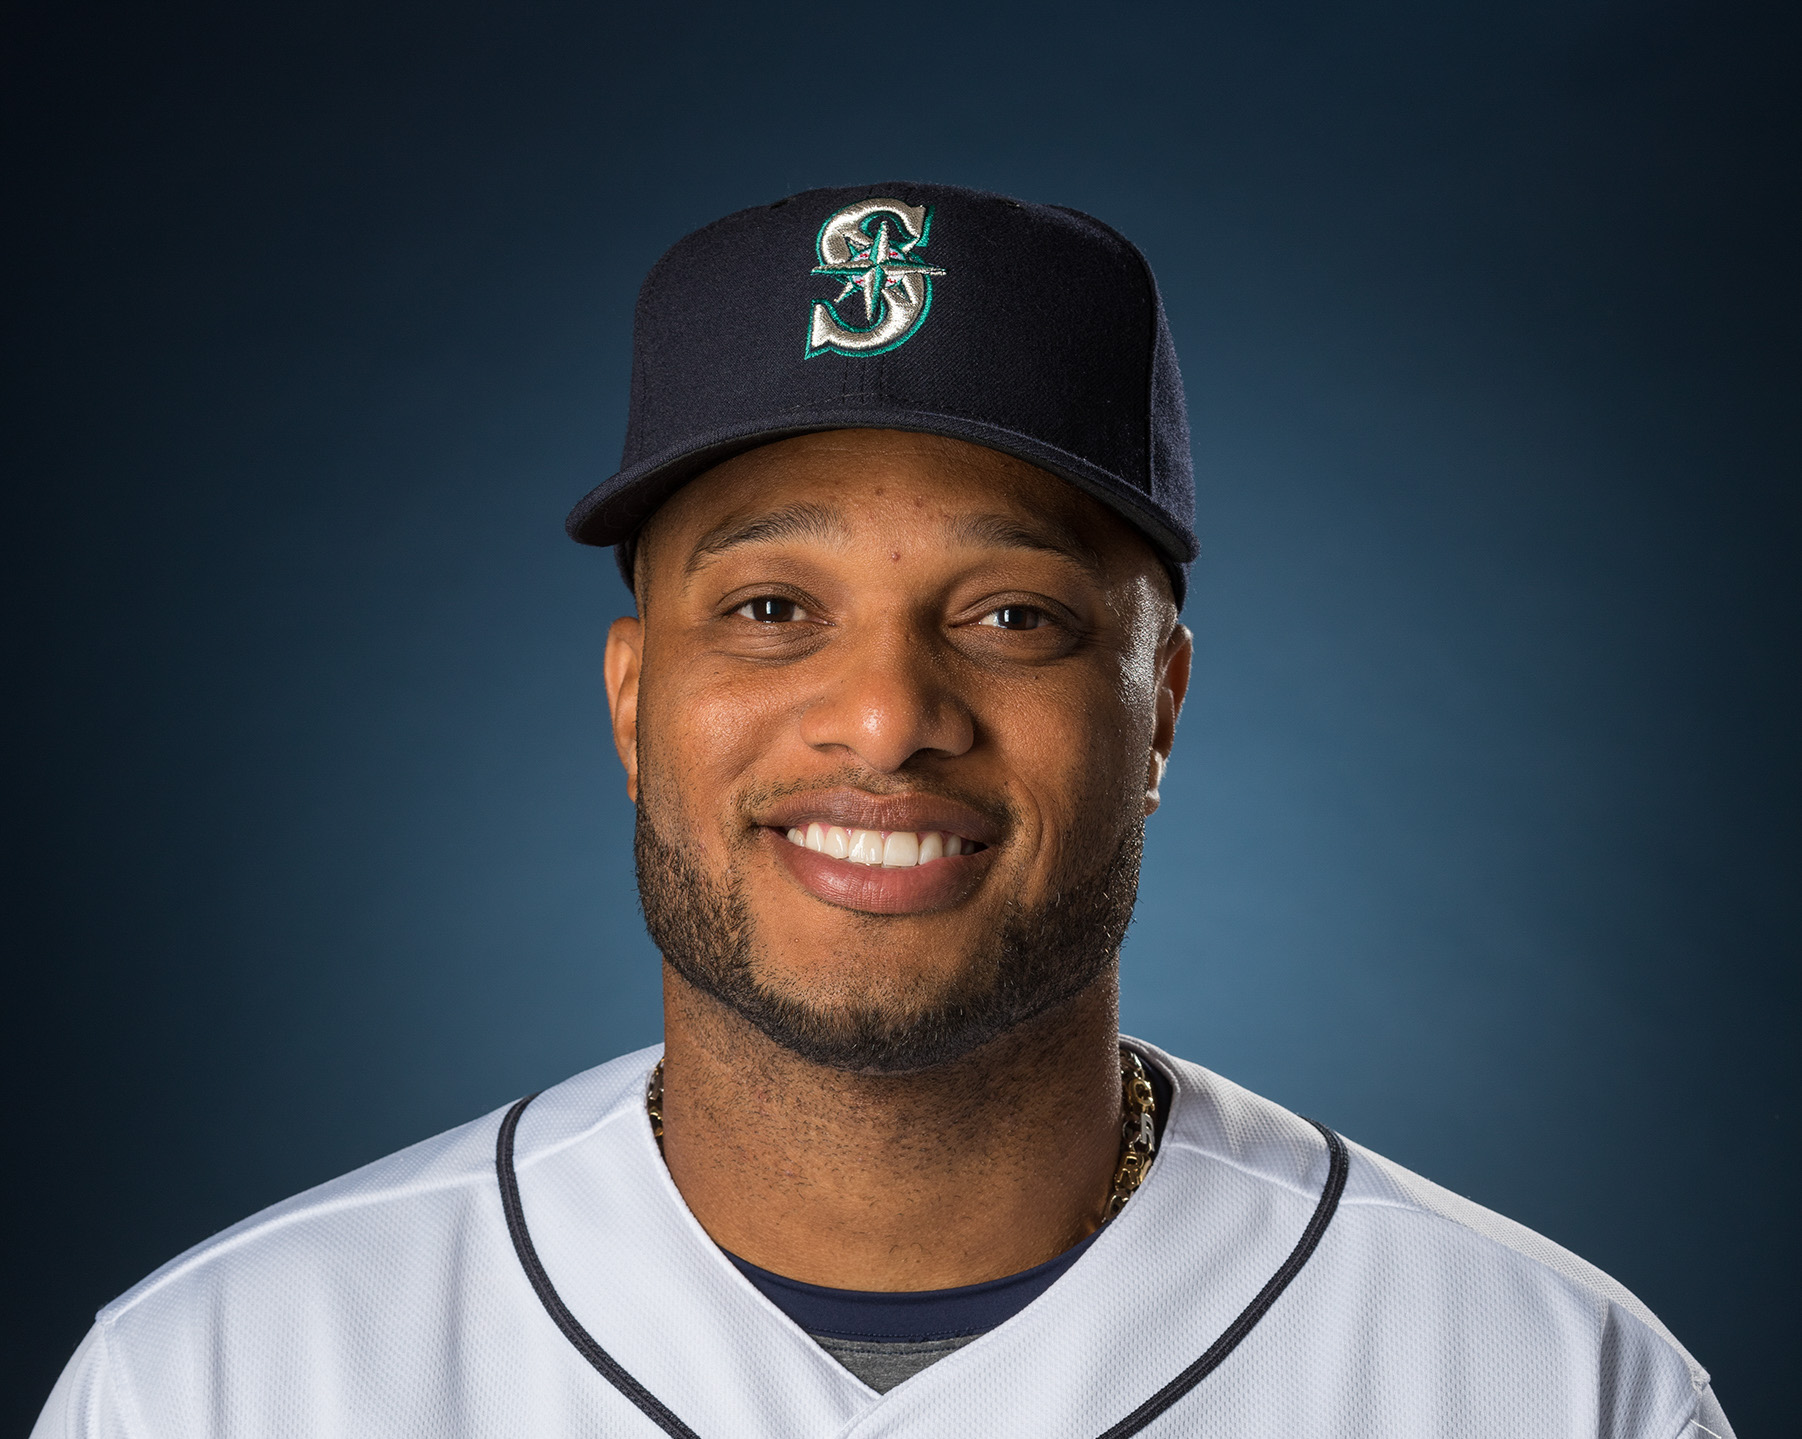 Robinson Cano leads Mariners past Rangers | Classic Rock ...